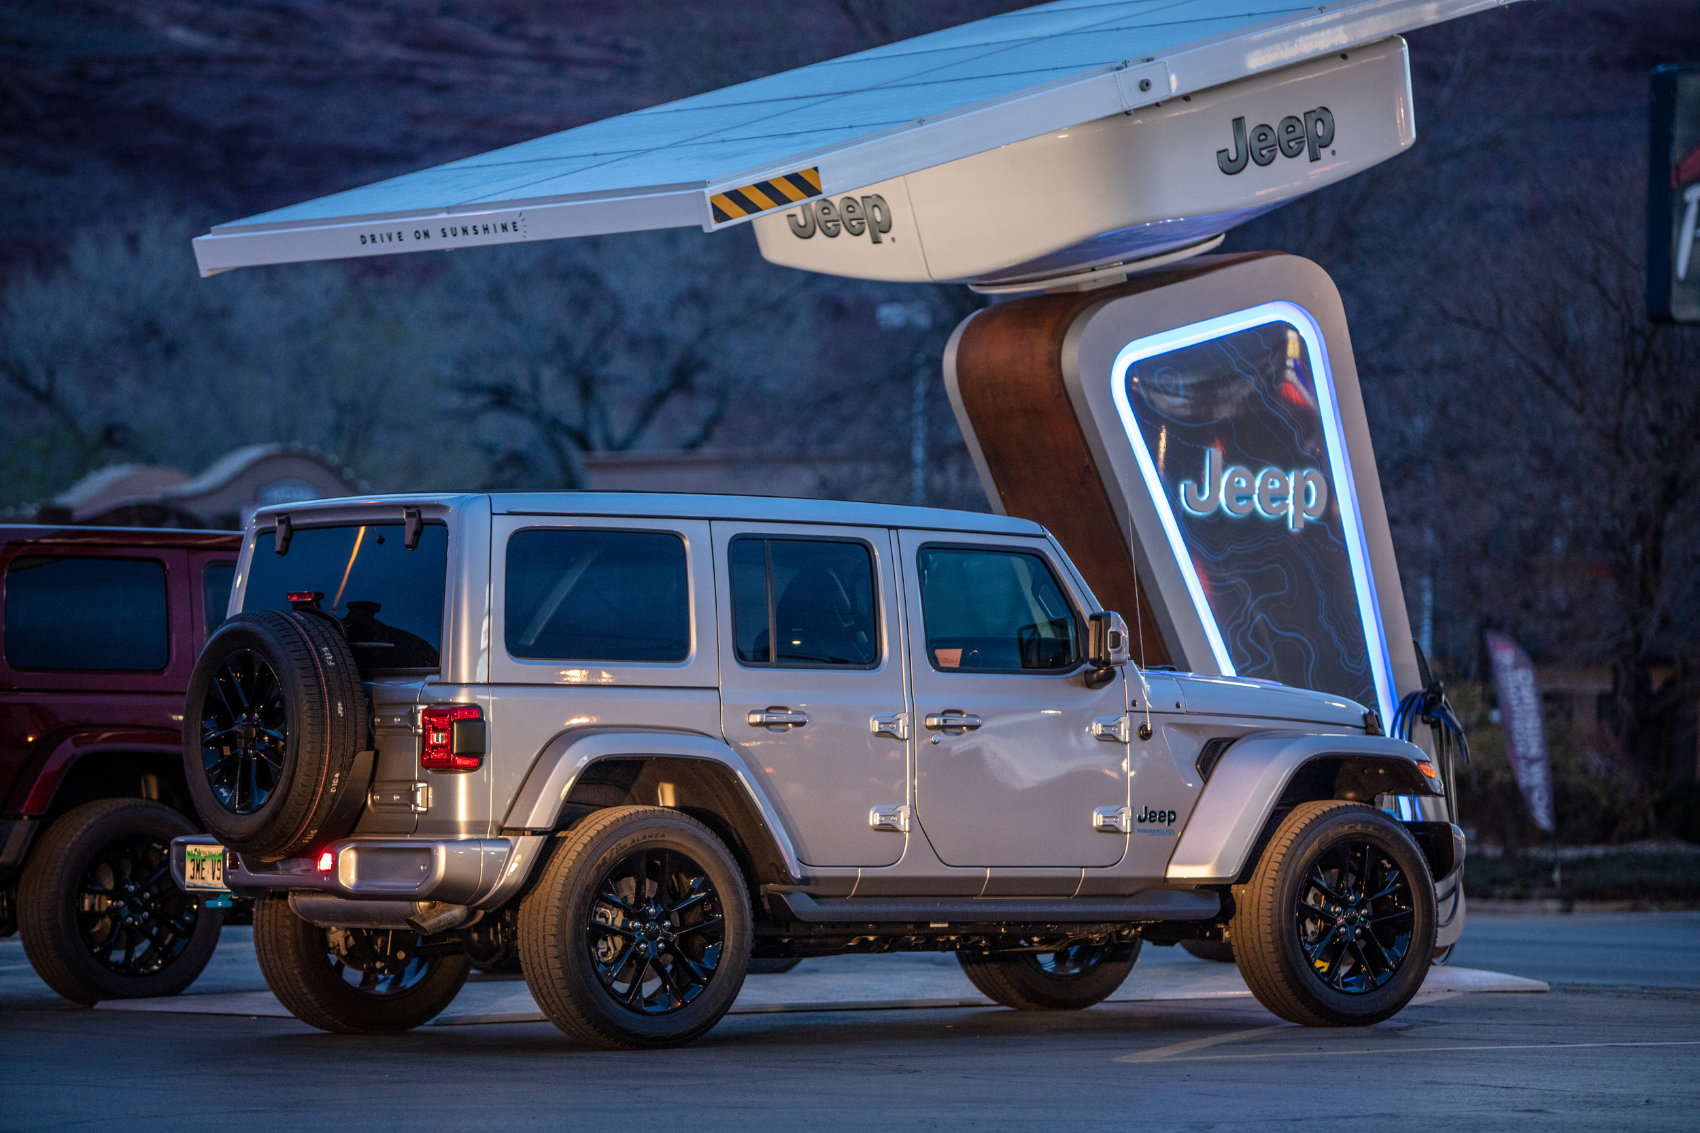 Jeep 4xe Charging Network With Electrify America - Credit Electrify America